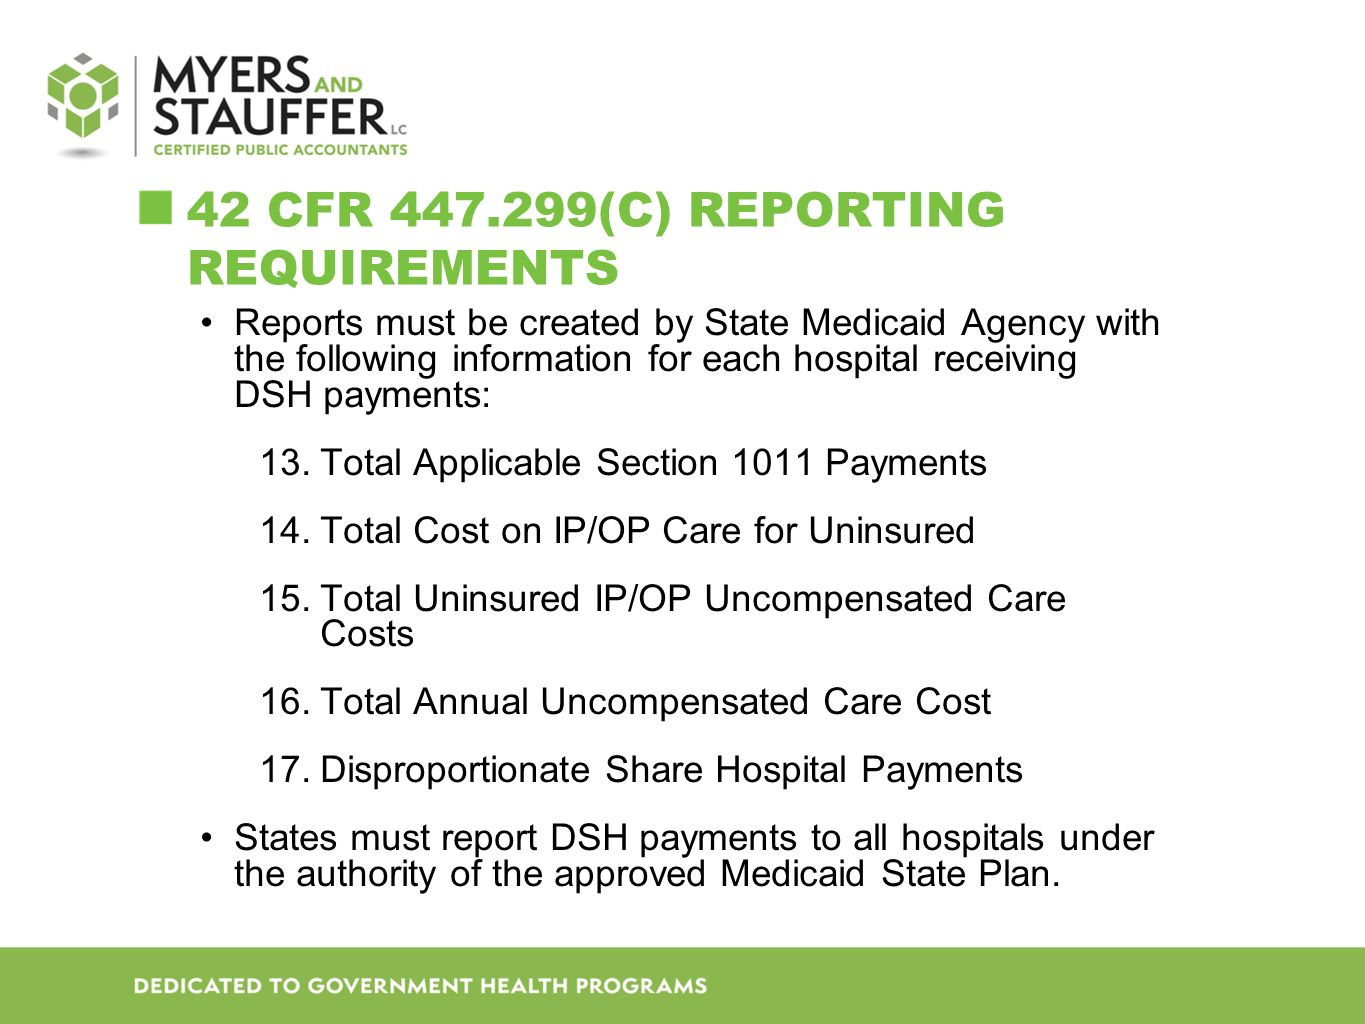 42 CFR 447.299(C) REPORTING REQUIREMENTS States must report all 17 fields of data for payments to in-state hospitals.